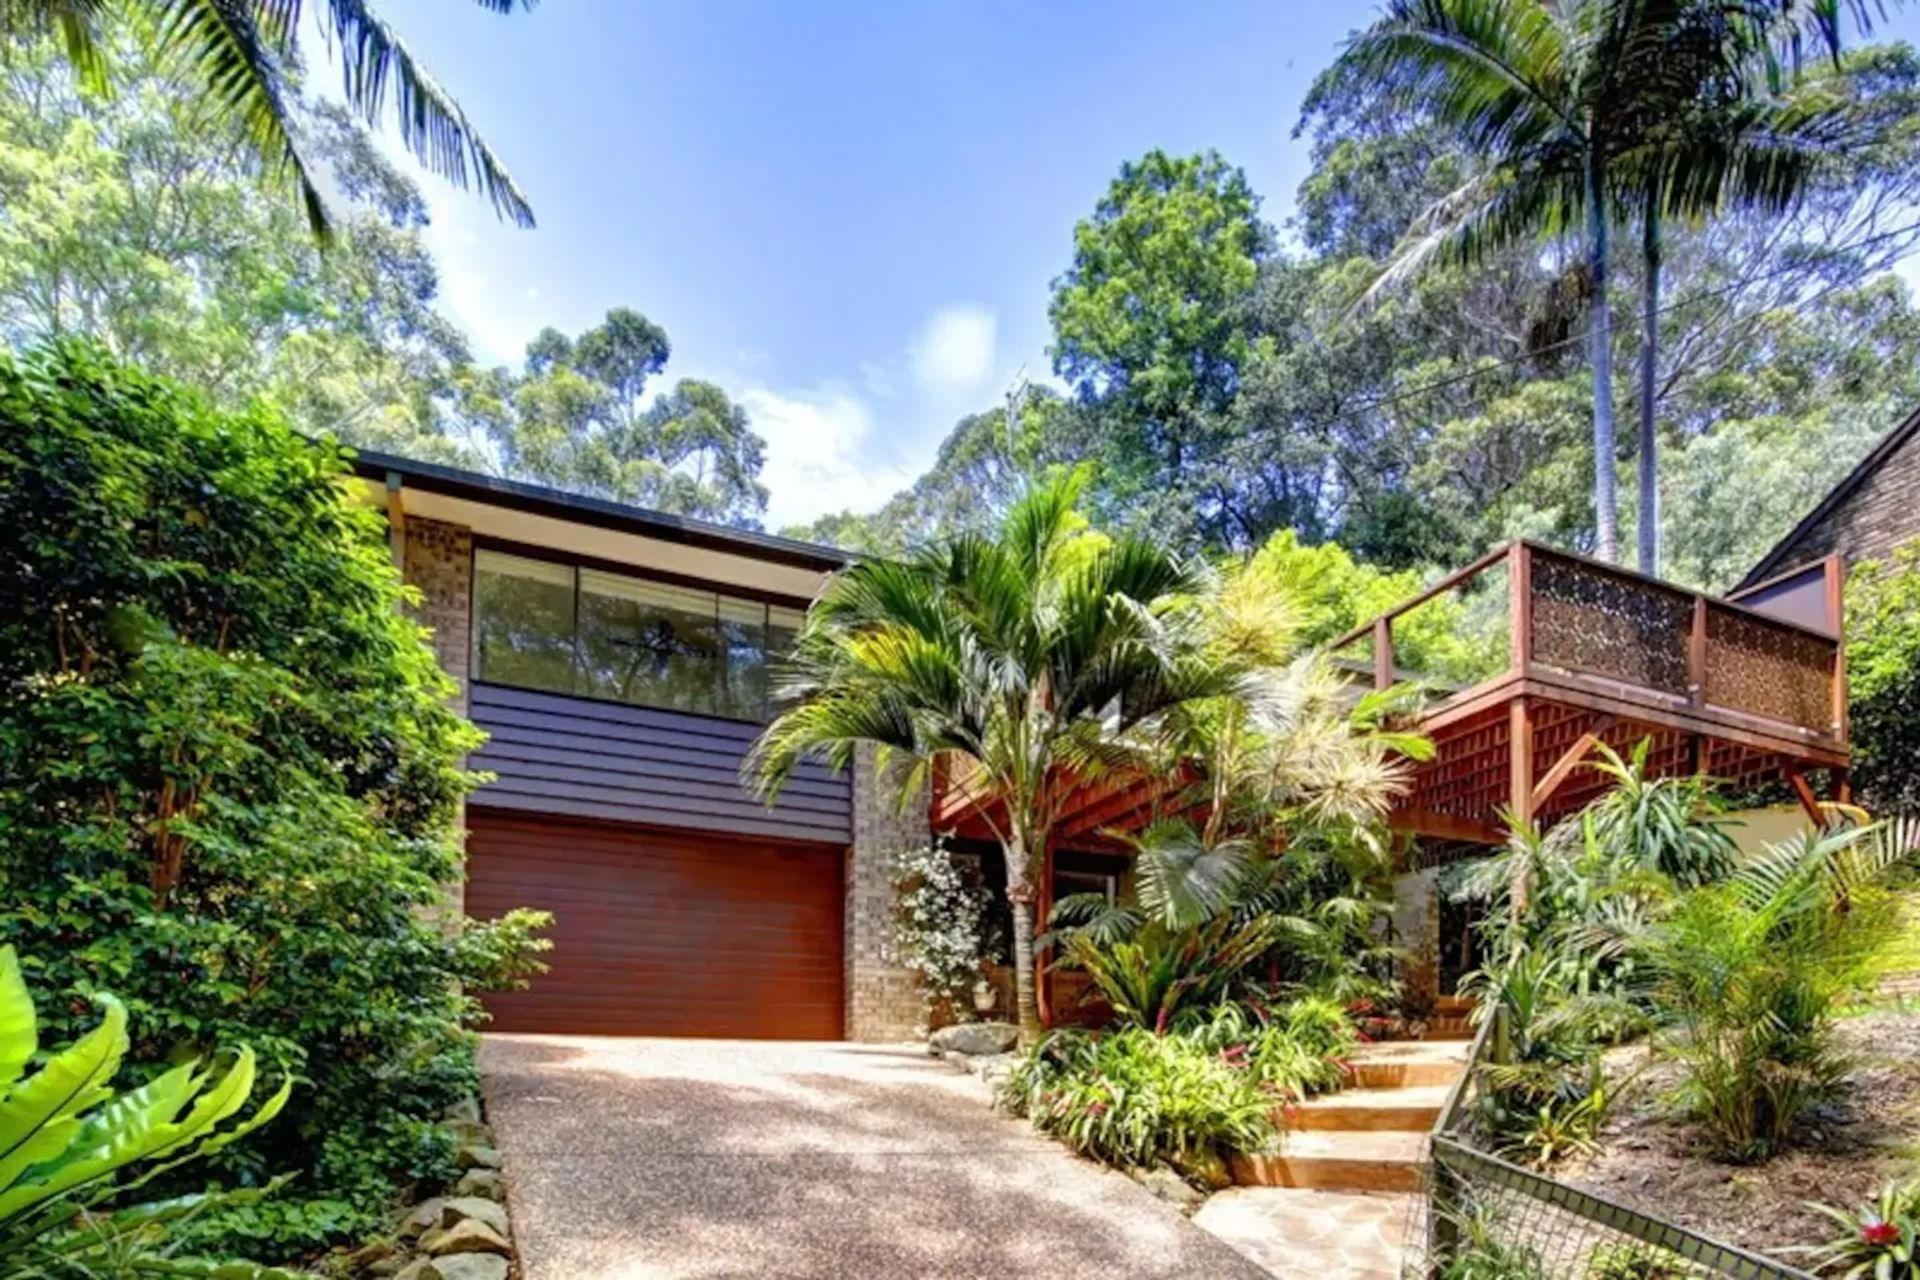 Copacabana Real Estate: IMPRESSIVE HOME WALK TO BEACH